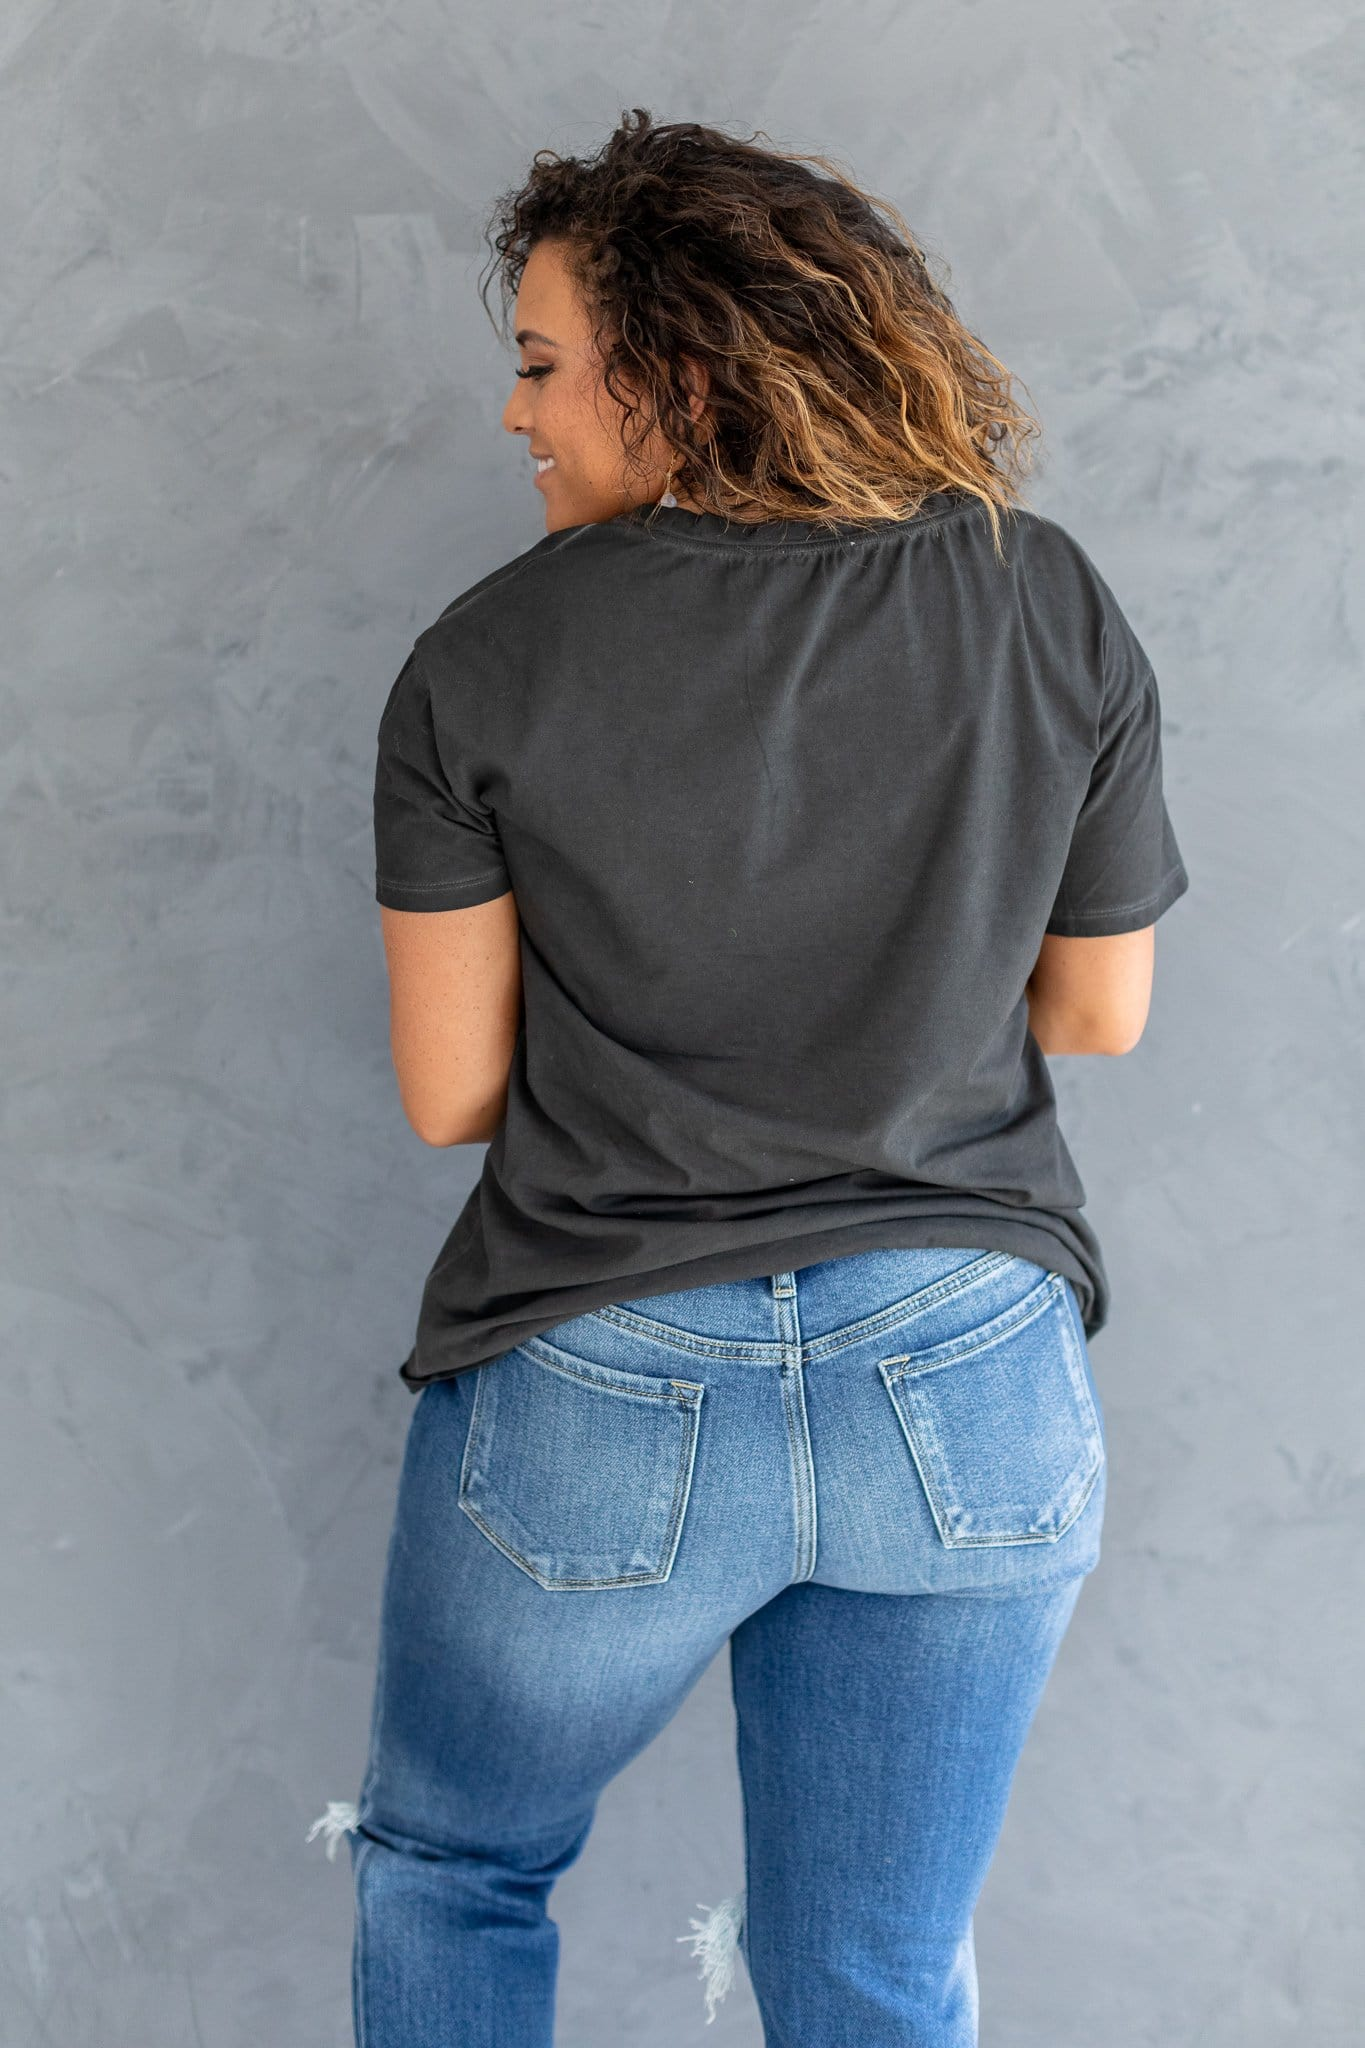 The Bridget Mineral Washed Top in Black, Indigo and Mauve